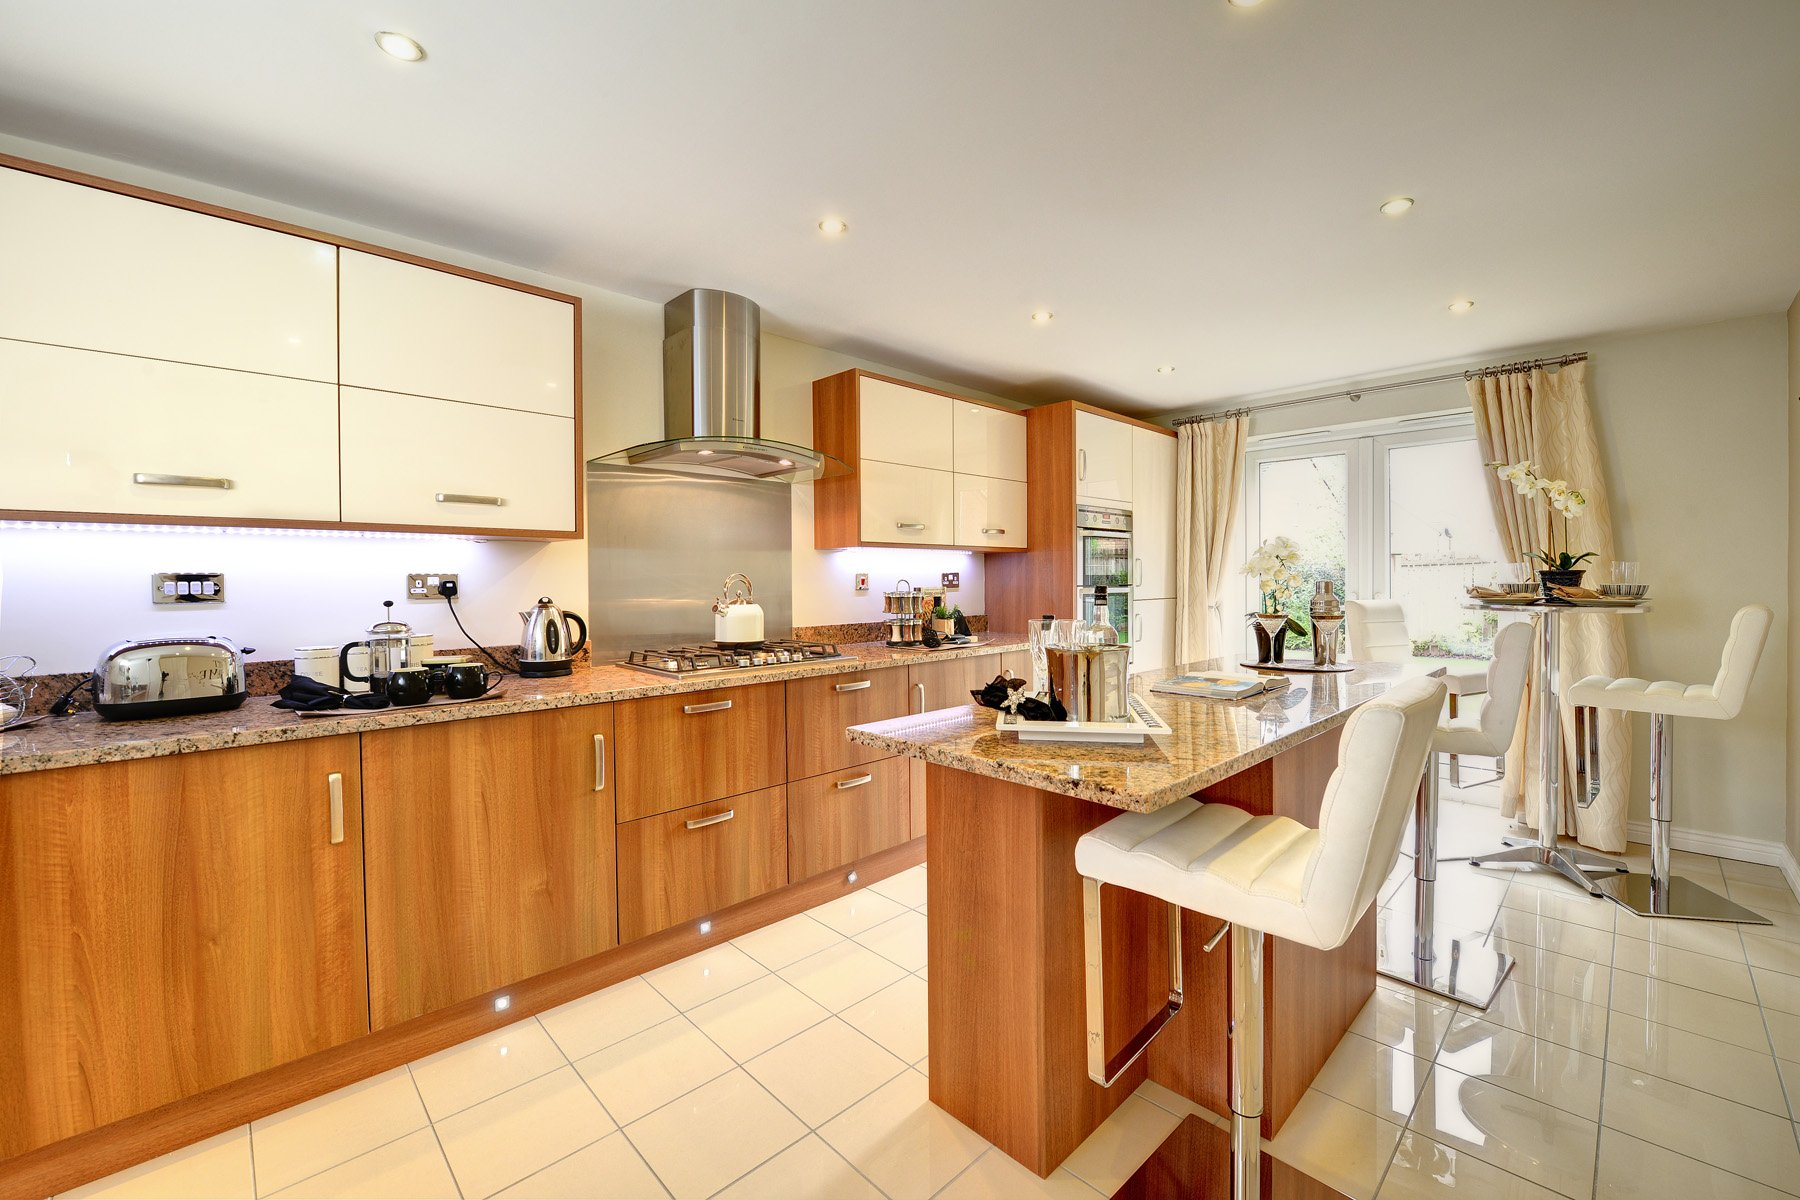 The Cavendish - Showhome - 4 bed detached